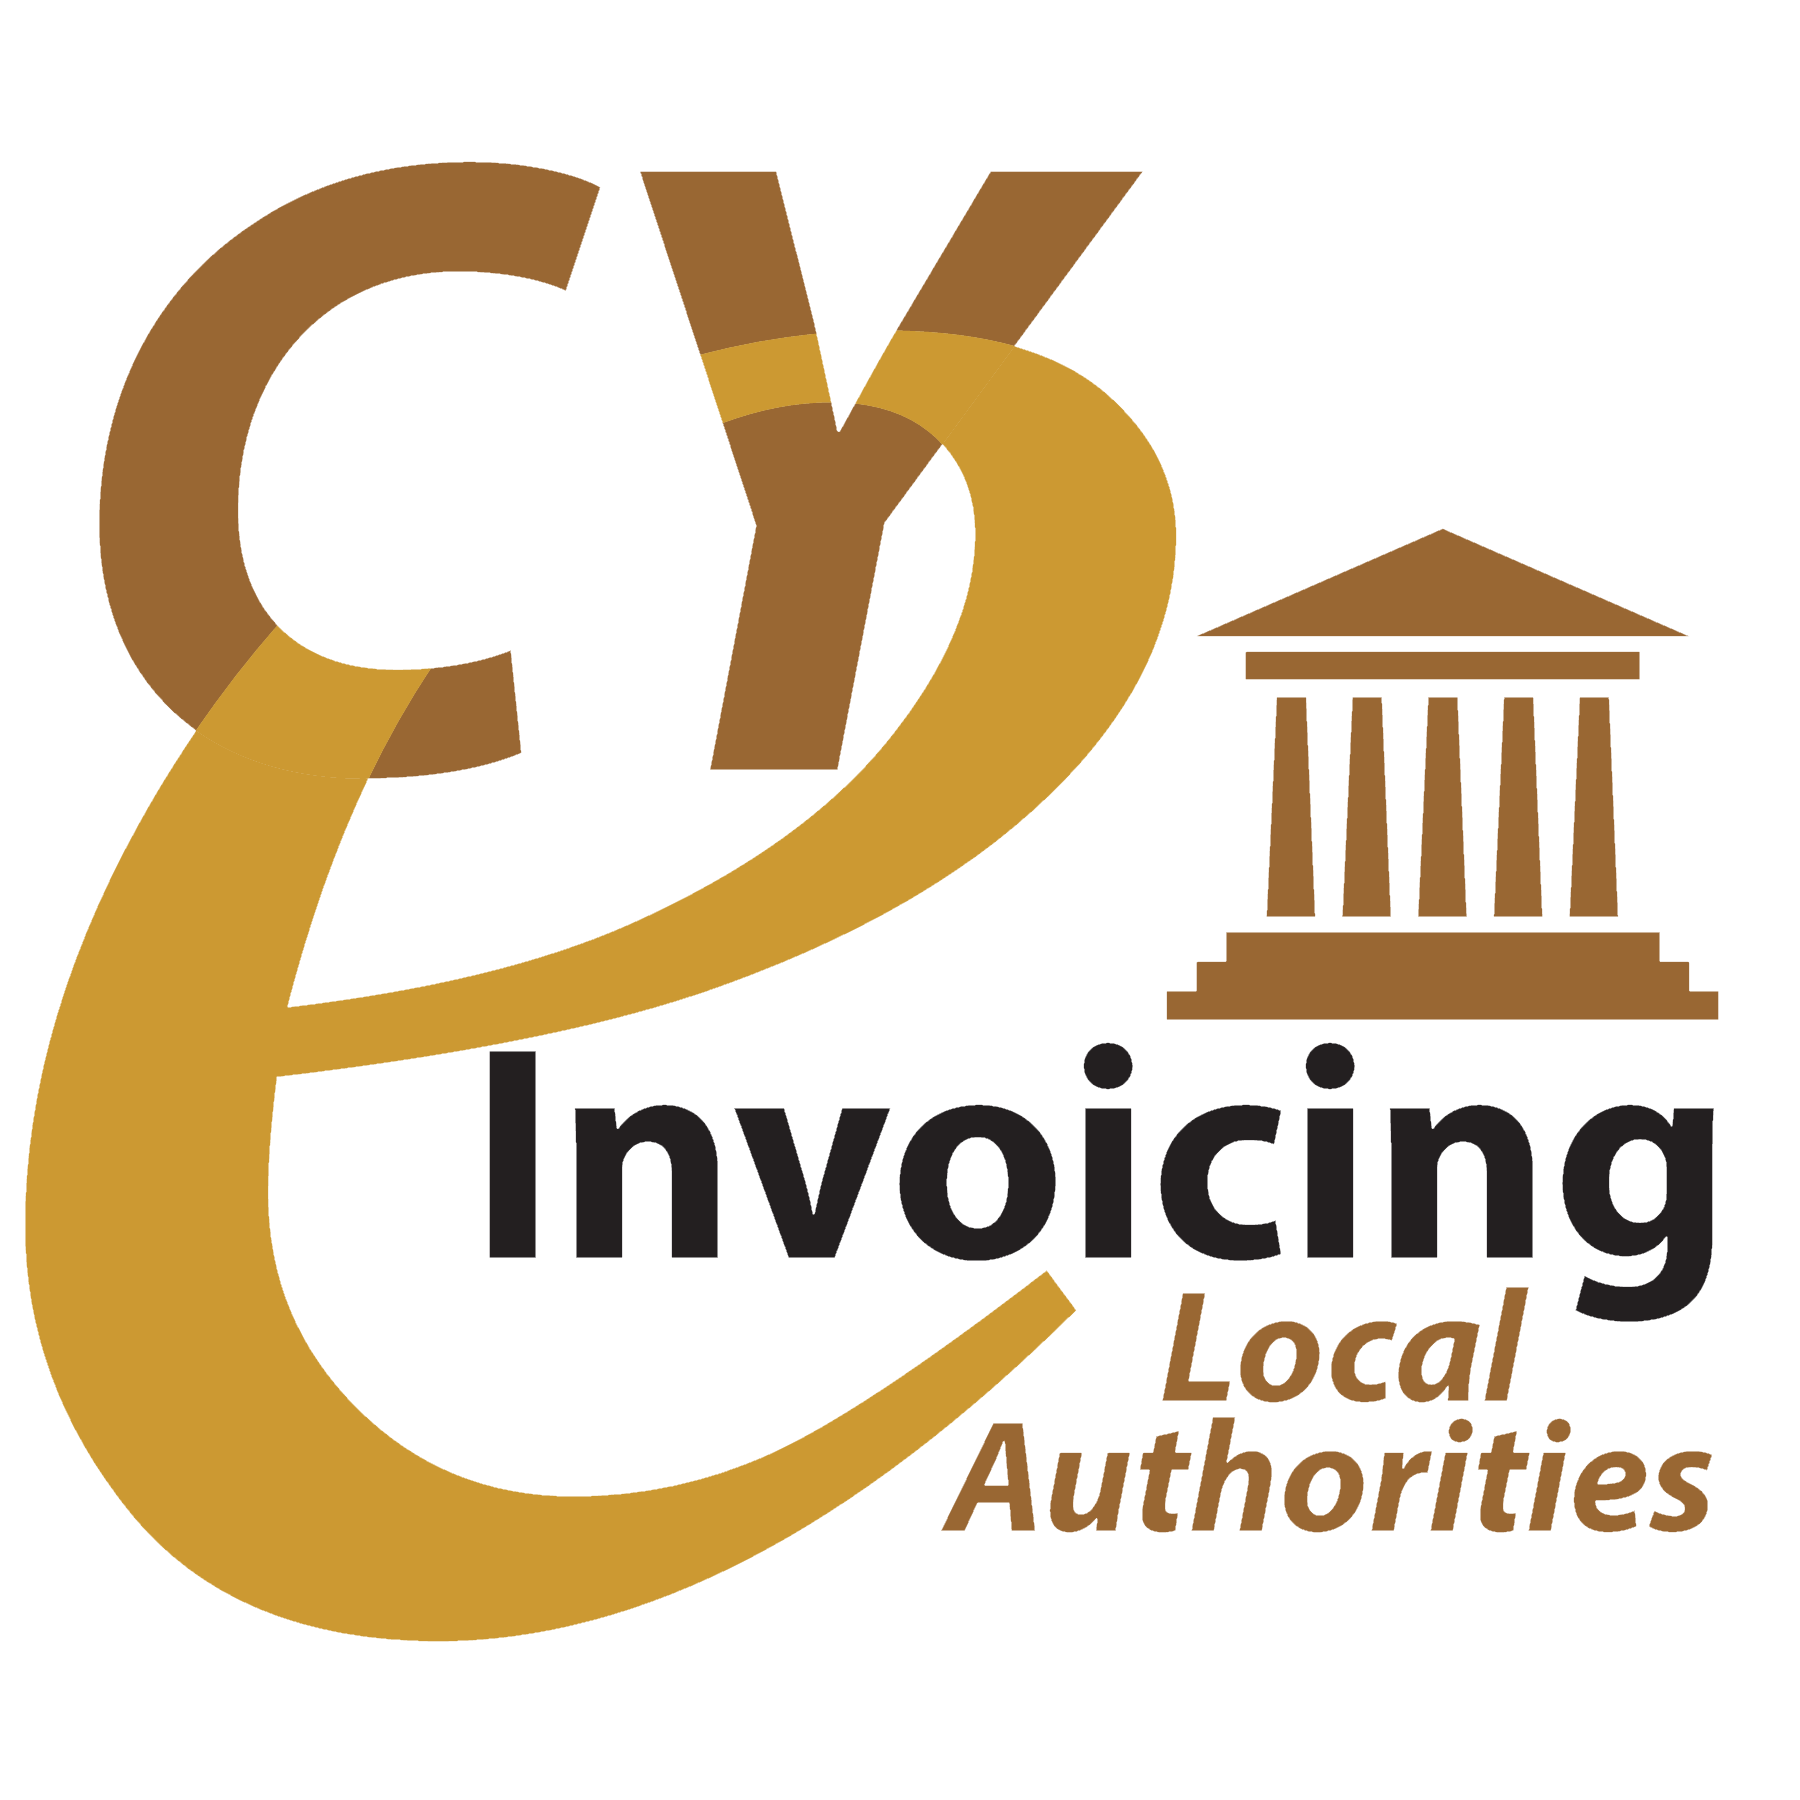 CY E-invoicing - Local Authorities